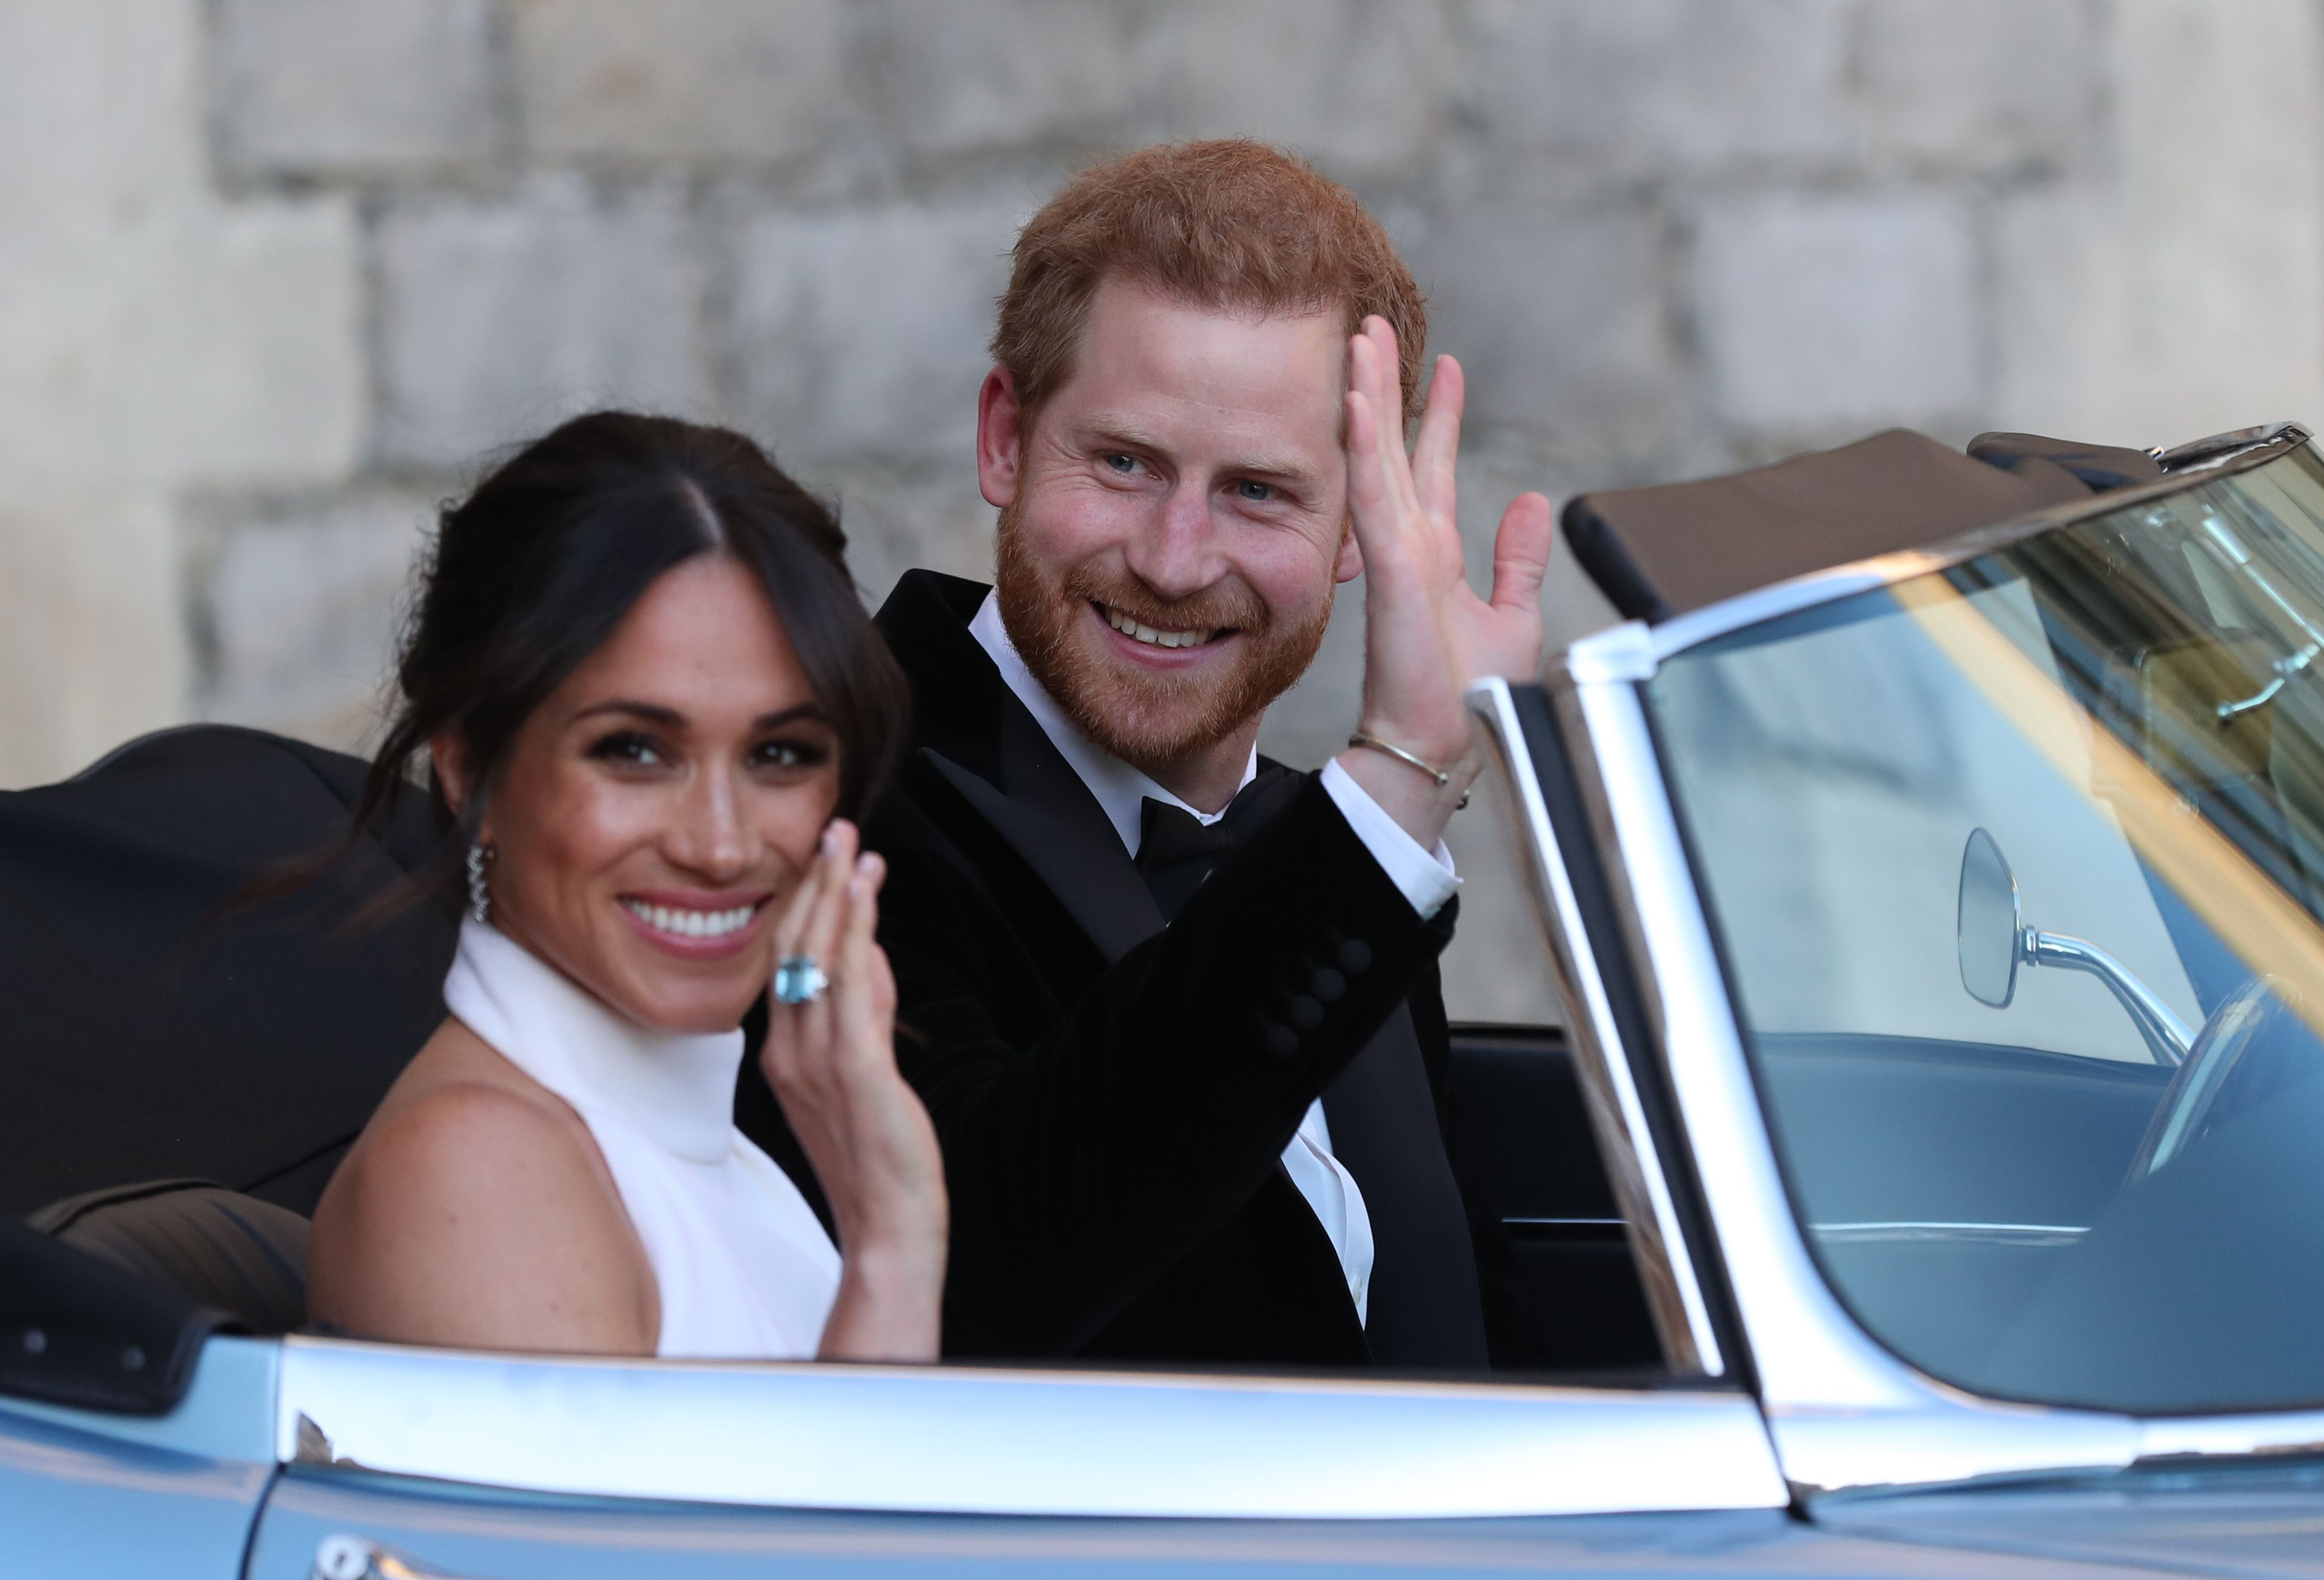 Meghan Markle Heads To Reception In Second Royal Wedding Dress By